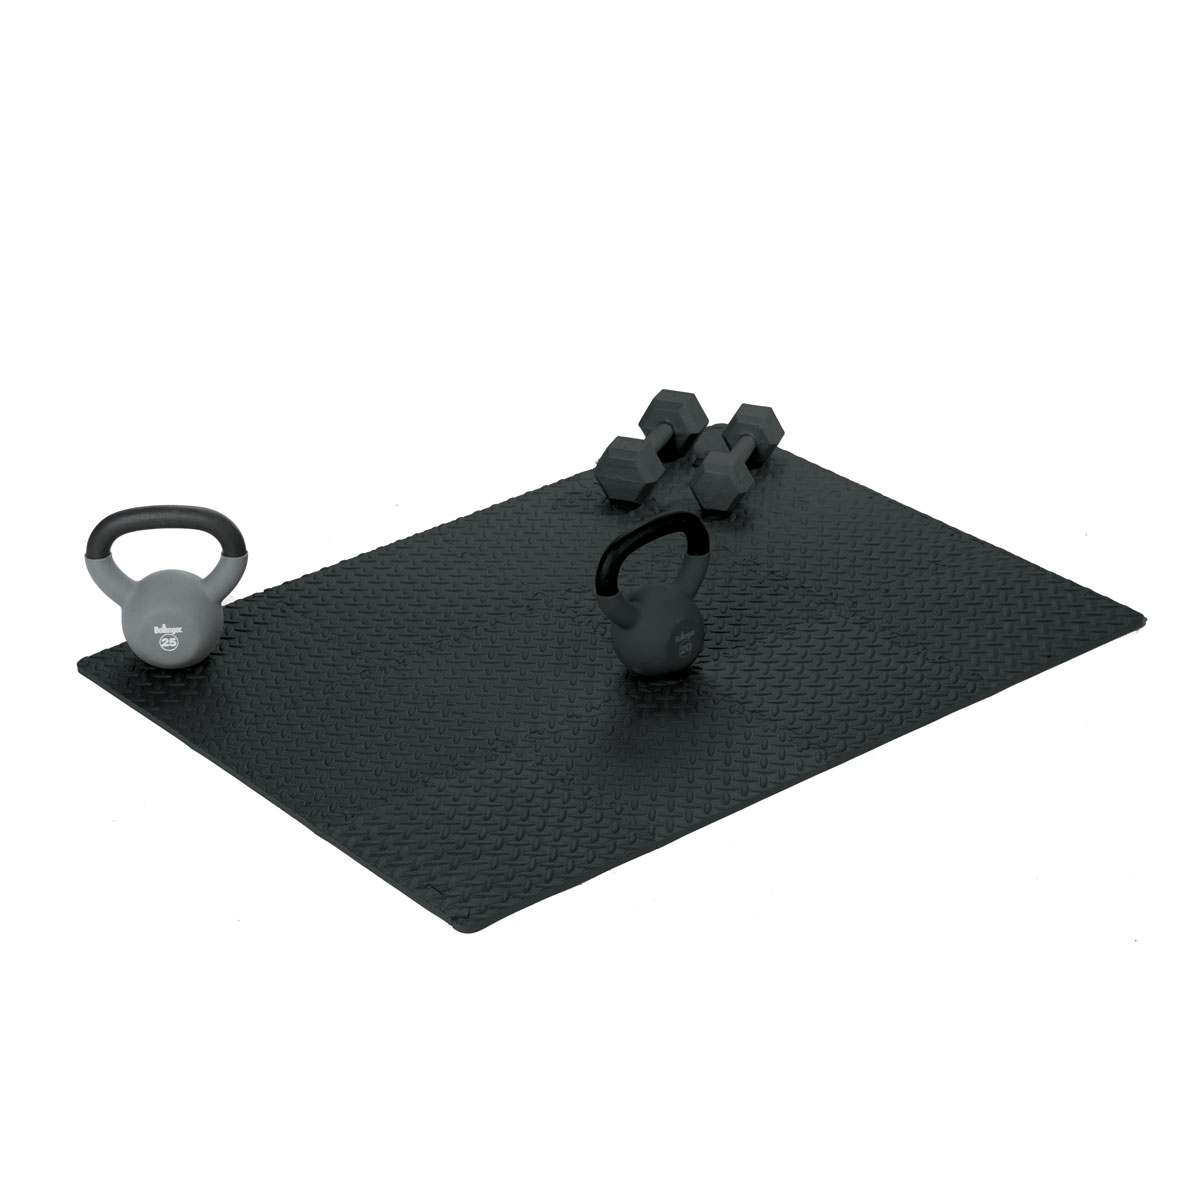 Interlocking Tiles Exercise Mat